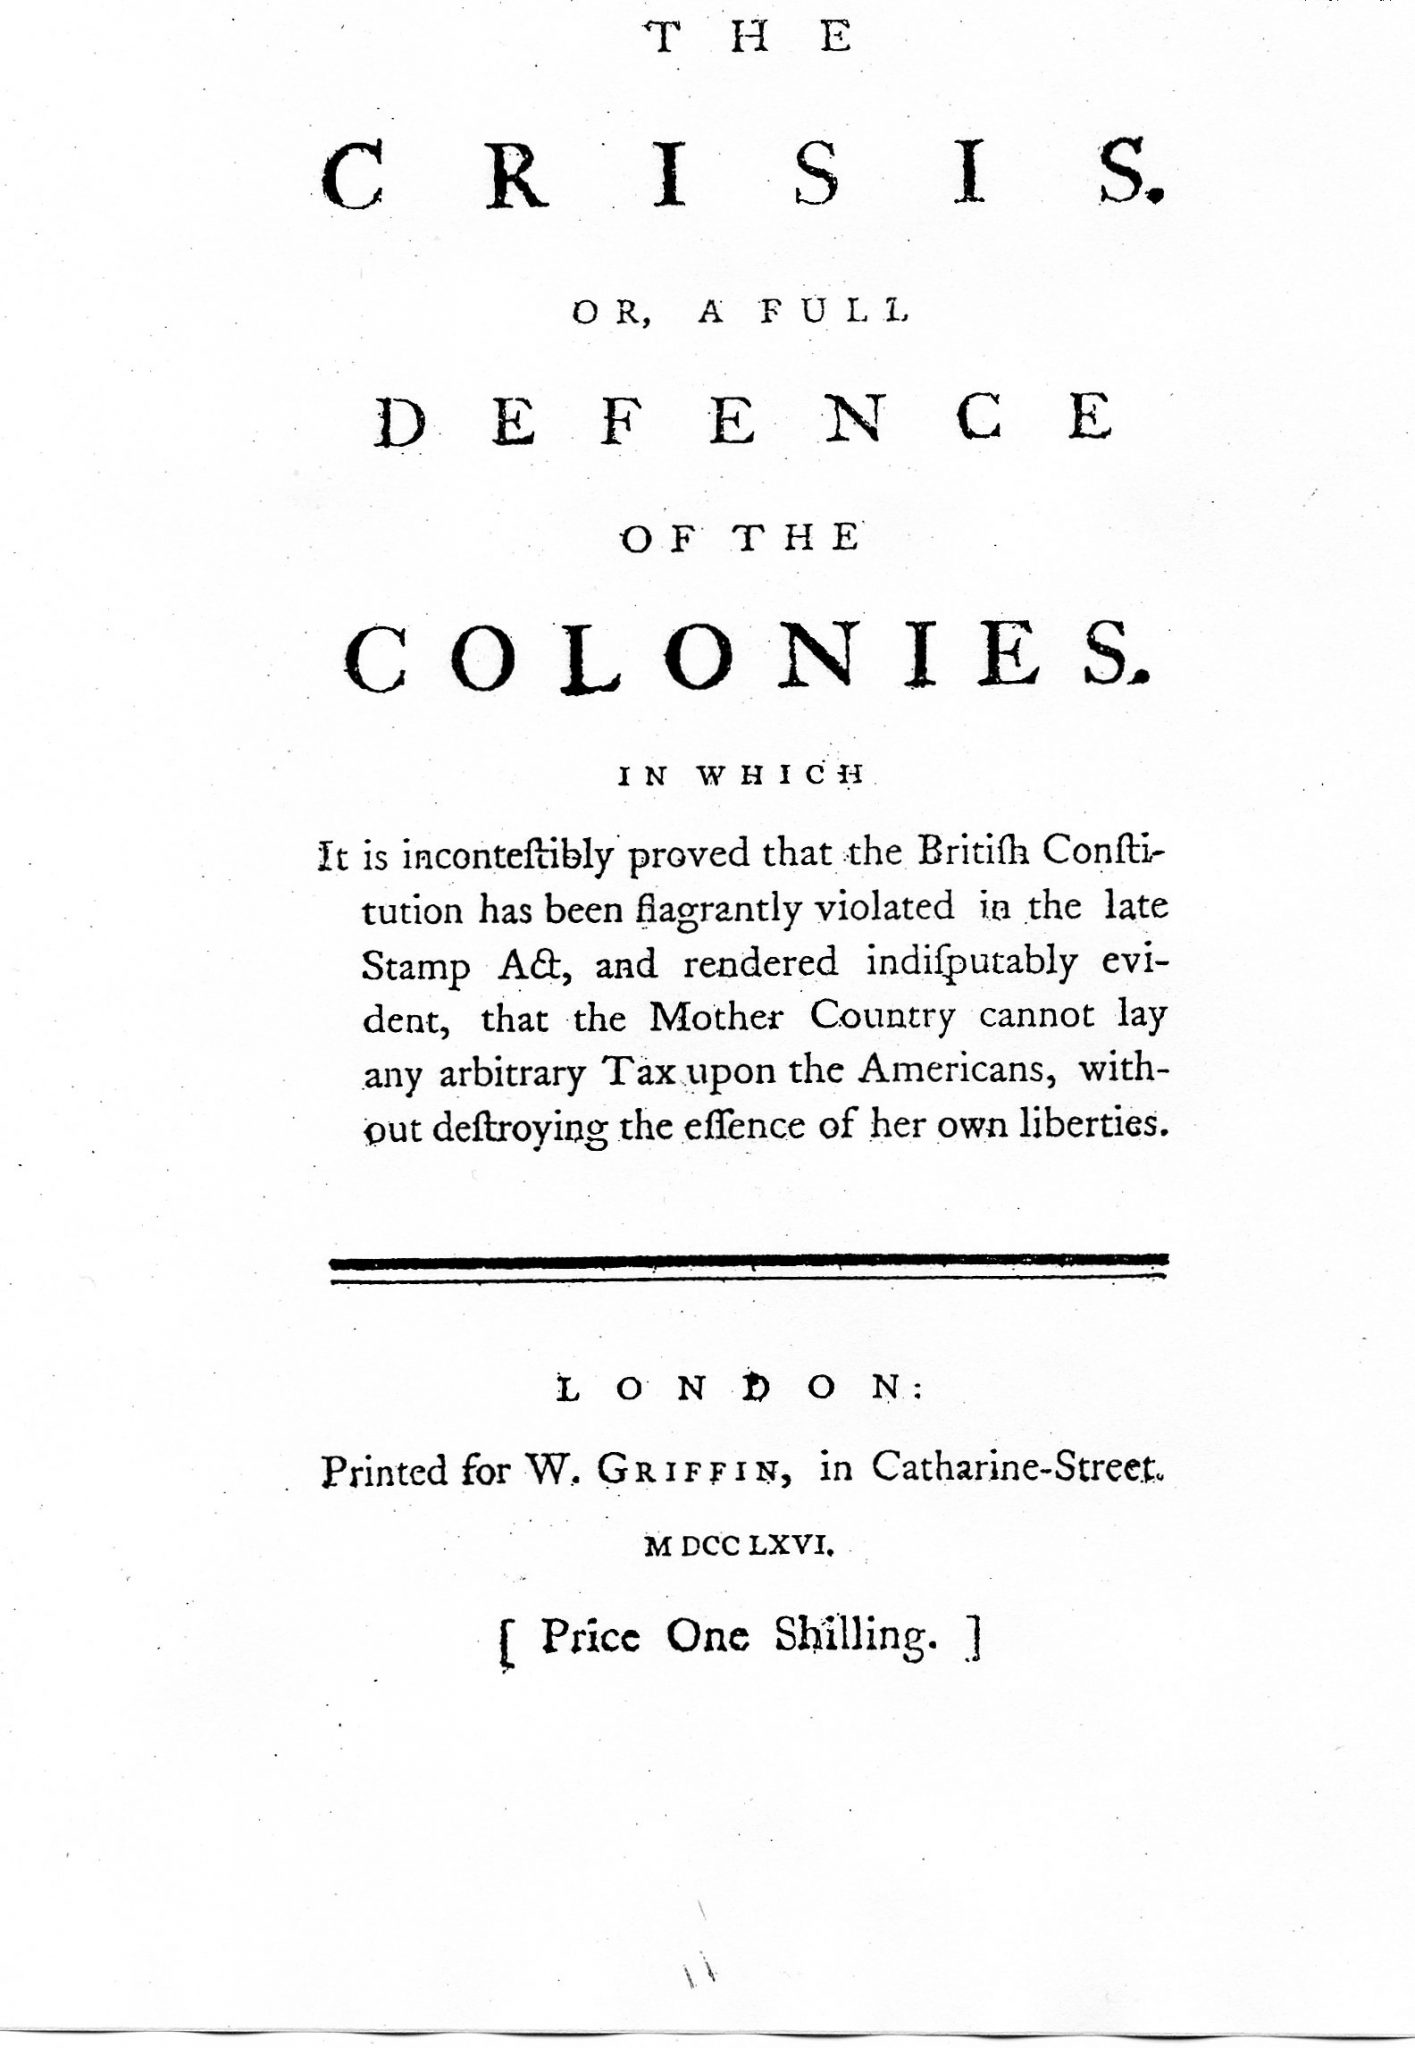 The Crisis, or a Full Defence of the Colonies, London, 1766